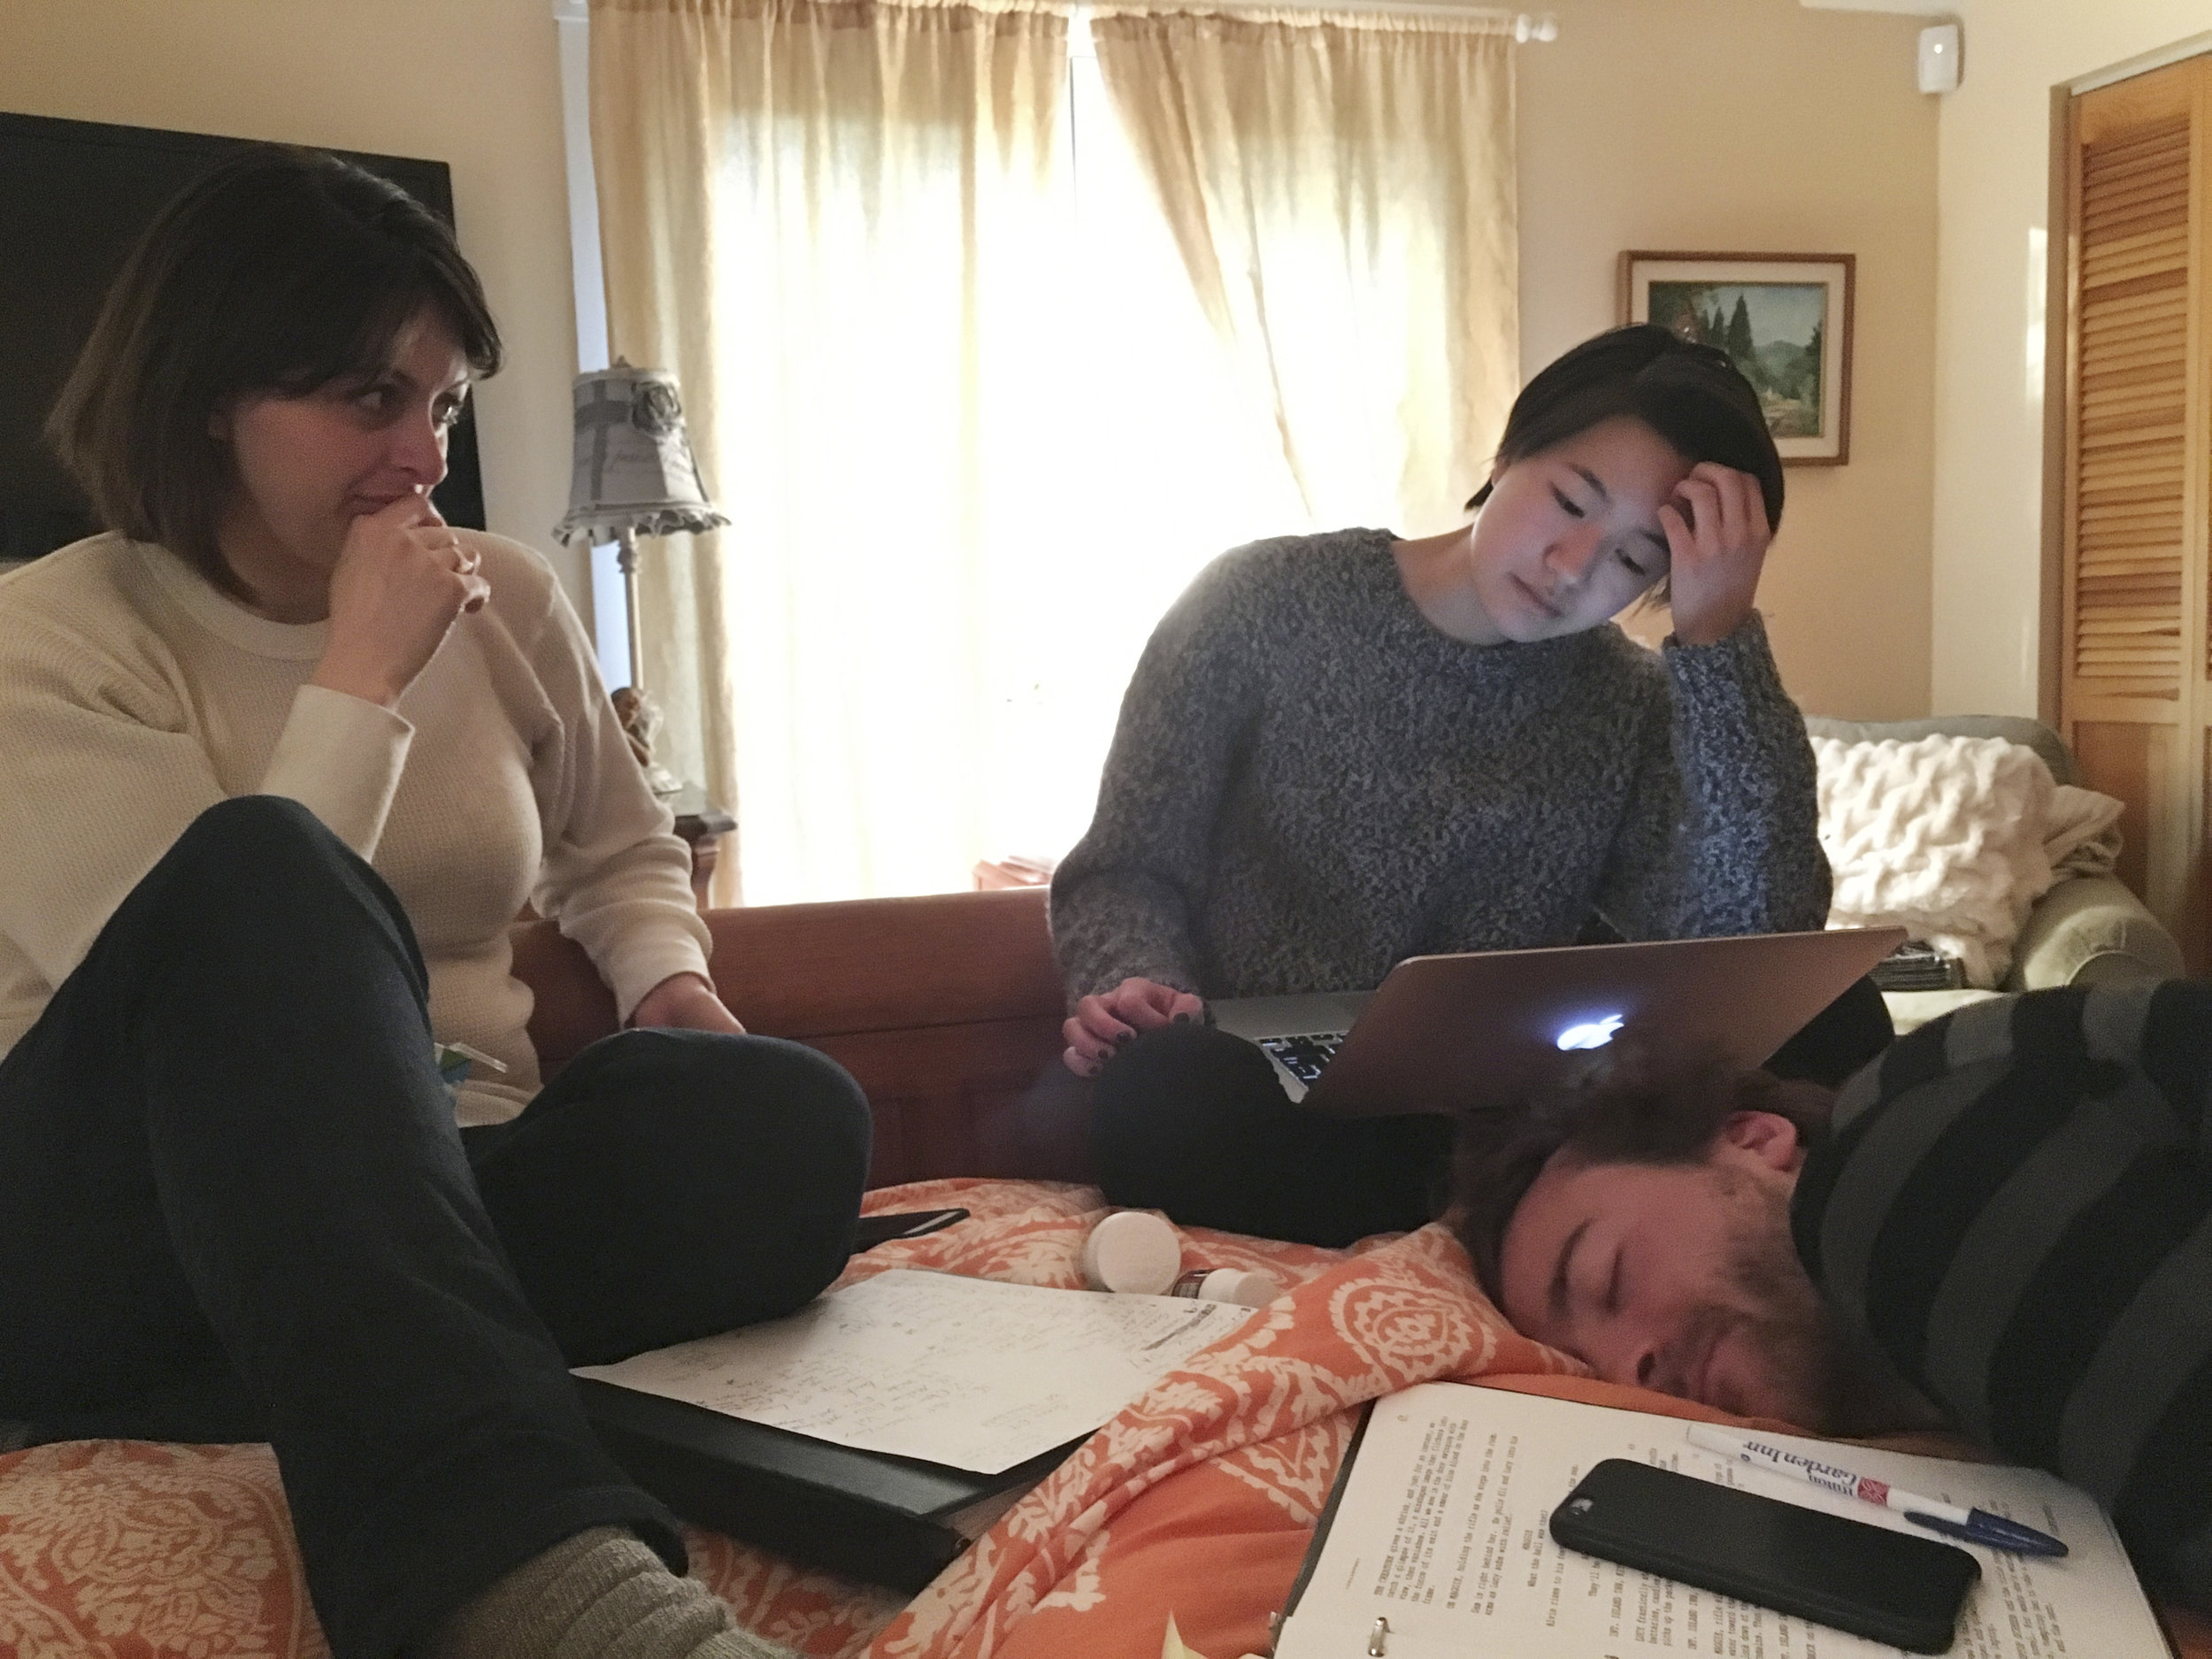 Producer Mariah Klapatch, line producer Candice Kuwahara, and DP Mark Farney work on the next day's schedule